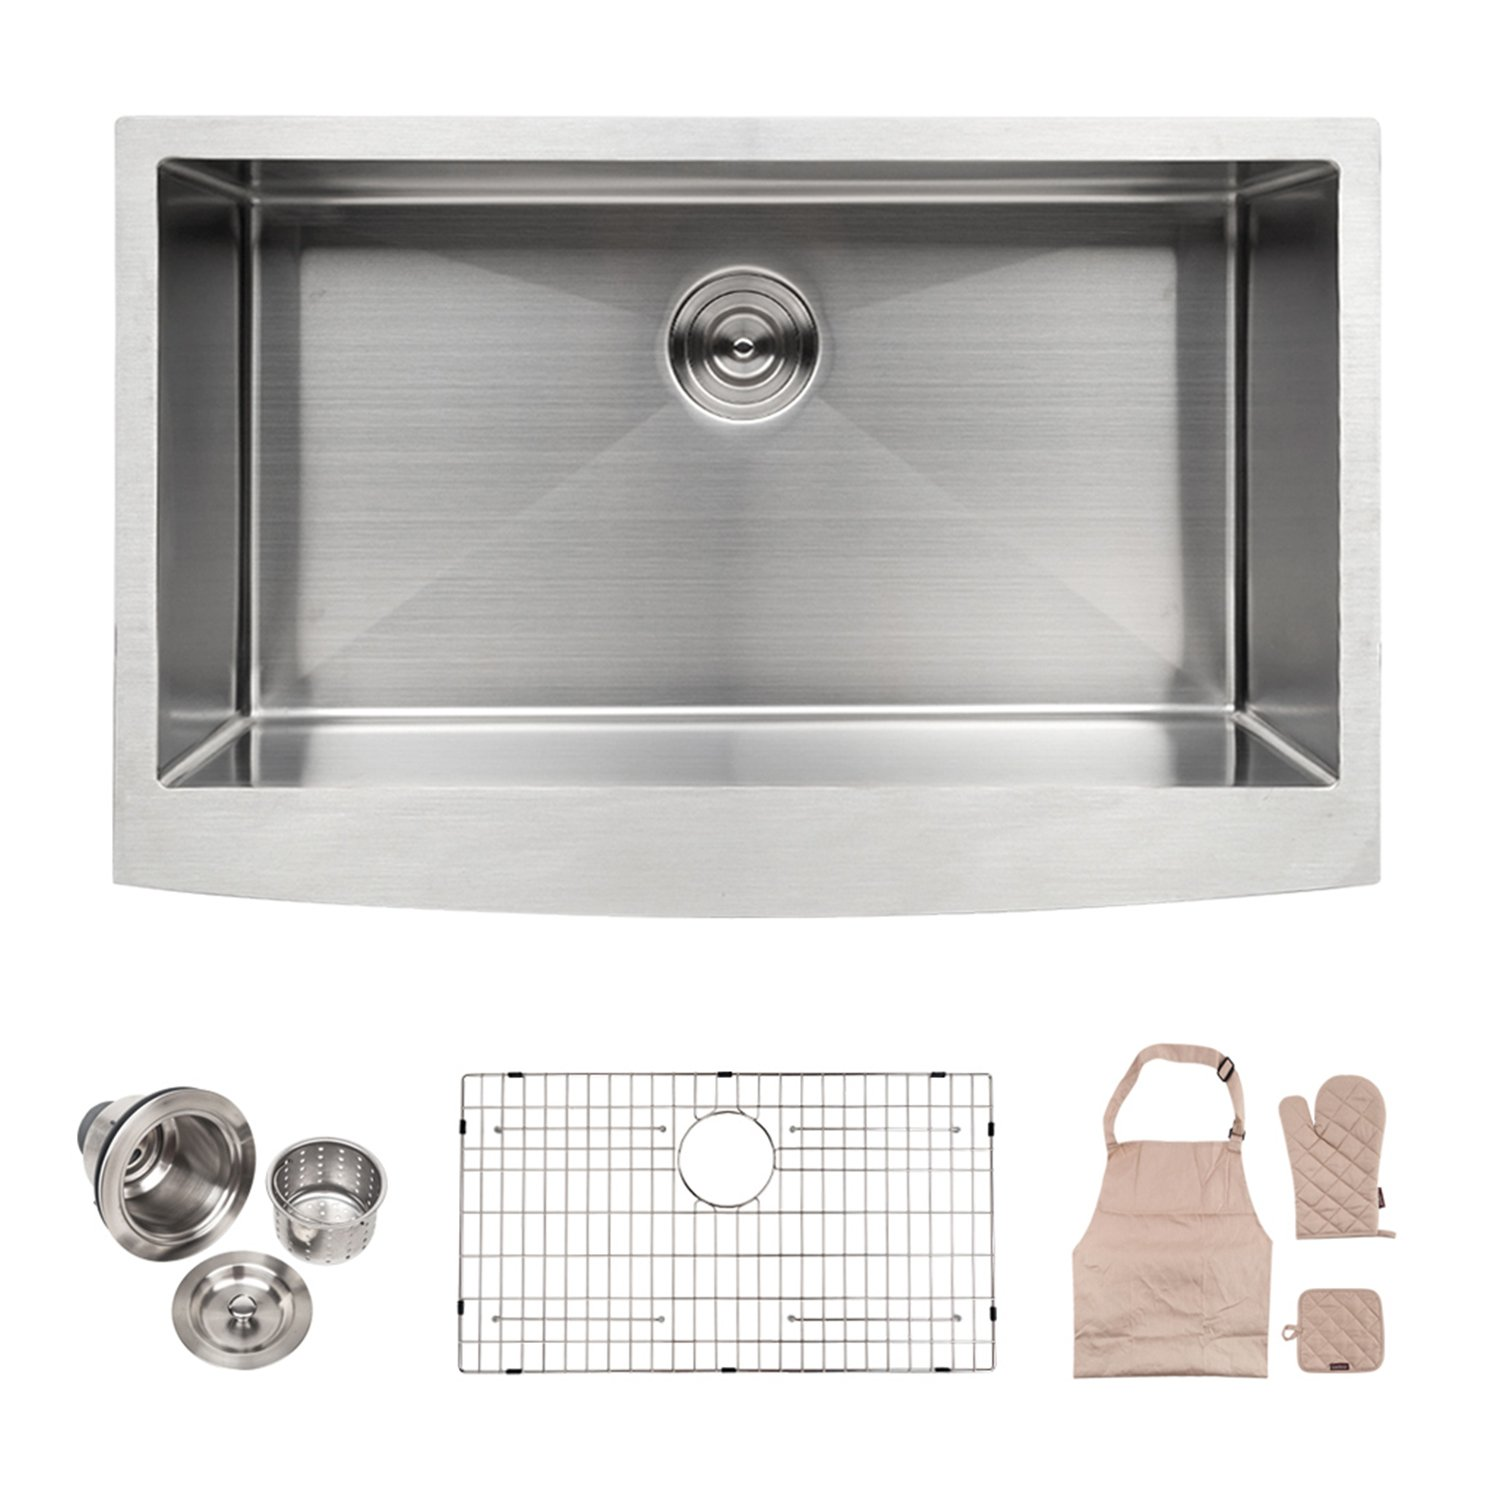 LORDEAR SLJ16003 Commercial 33 Inch 16 Gauge 10 Inch Deep Drop In Stainless Steel Undermout Single Bowl Farmhouse Apron Front Kitchen Sink, Brushed Nickel Farmhouse Kitchen Sink by Lordear (Image #1)